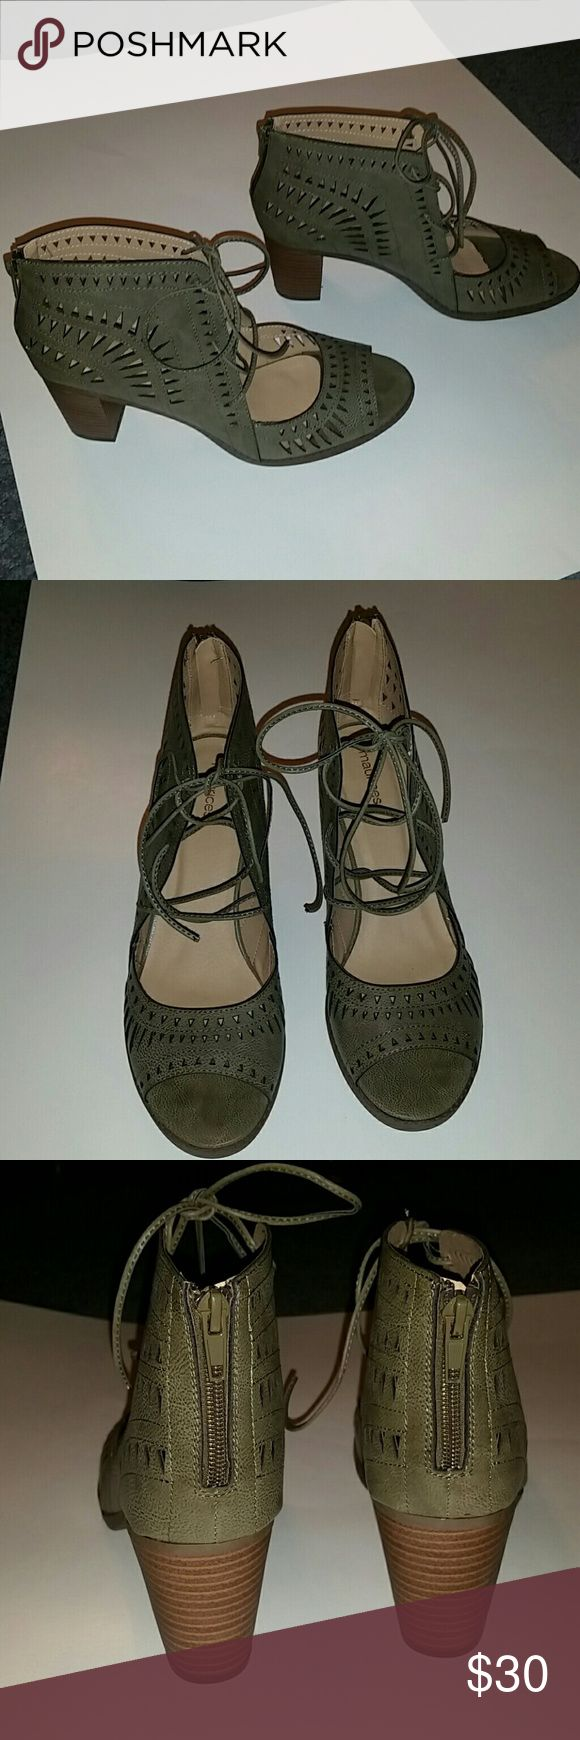 Maurices Green Lace Up Heeled Booties Size 11M These gorgeous shoes are by Maurices. They are brand new, never been worn. They are in great condition no marks or flaws. Size 11M. Color is Green and it has a cut out design. Lace up. Has a heel. Also, there is a zipper in back. If you have any questions please let me know. Feel free to make an offer! Maurices Shoes Ankle Boots & Booties